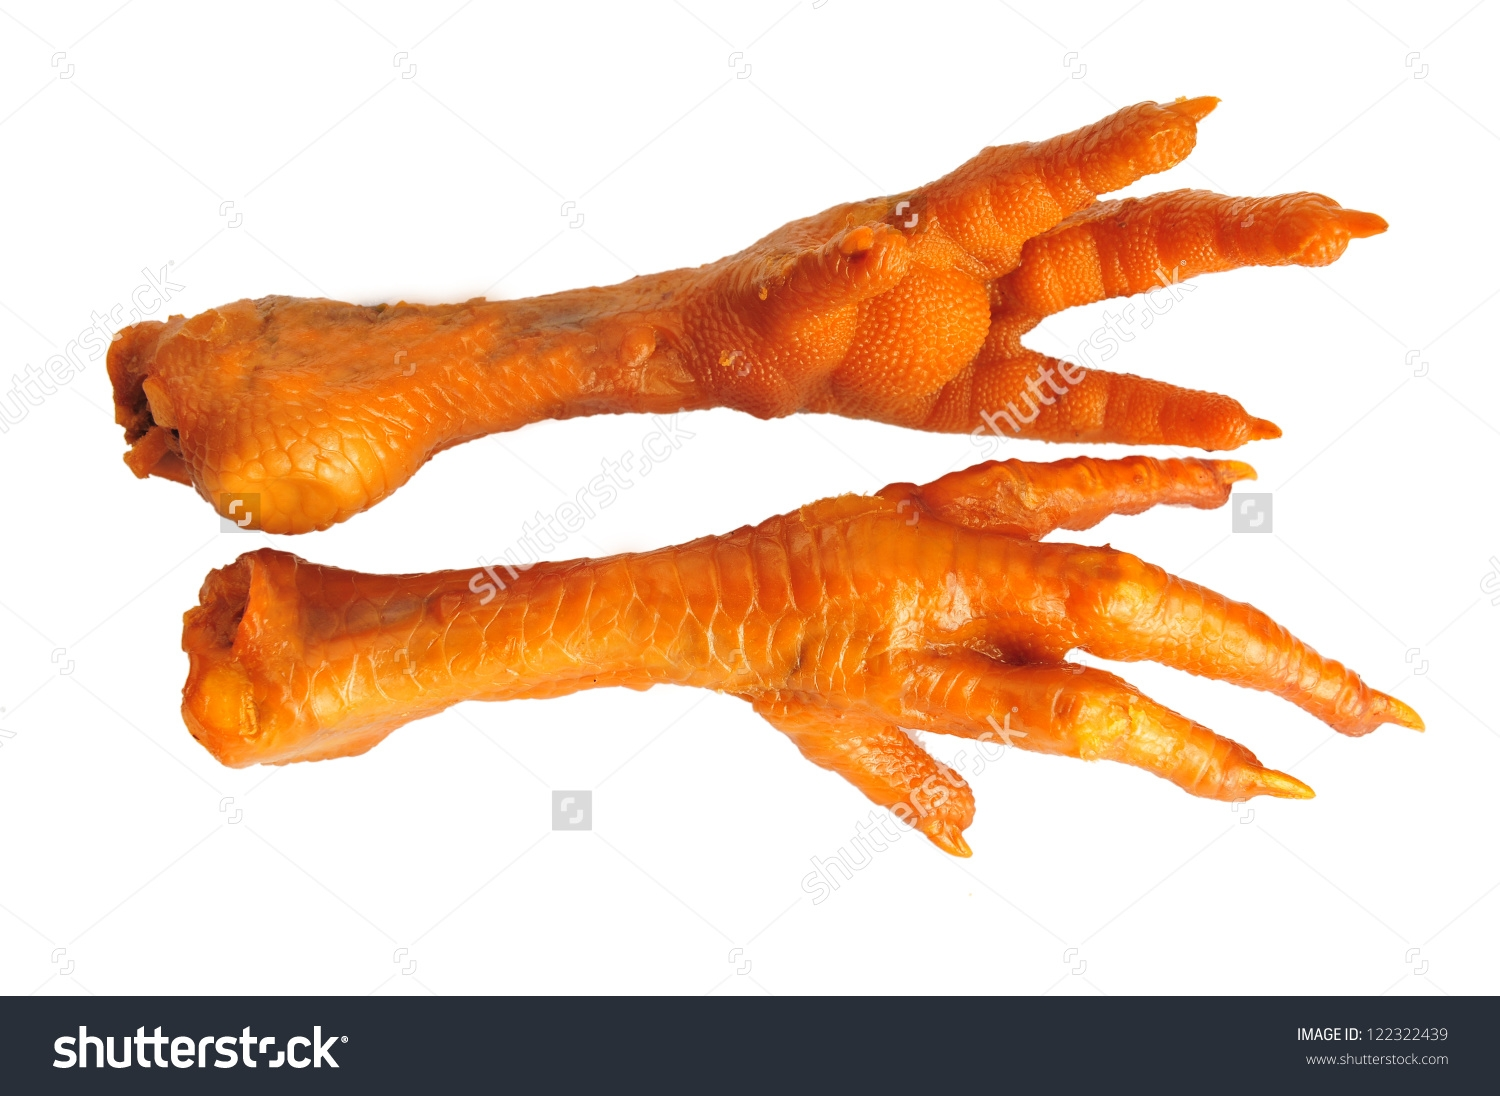 How To Boil Chicken Feet.